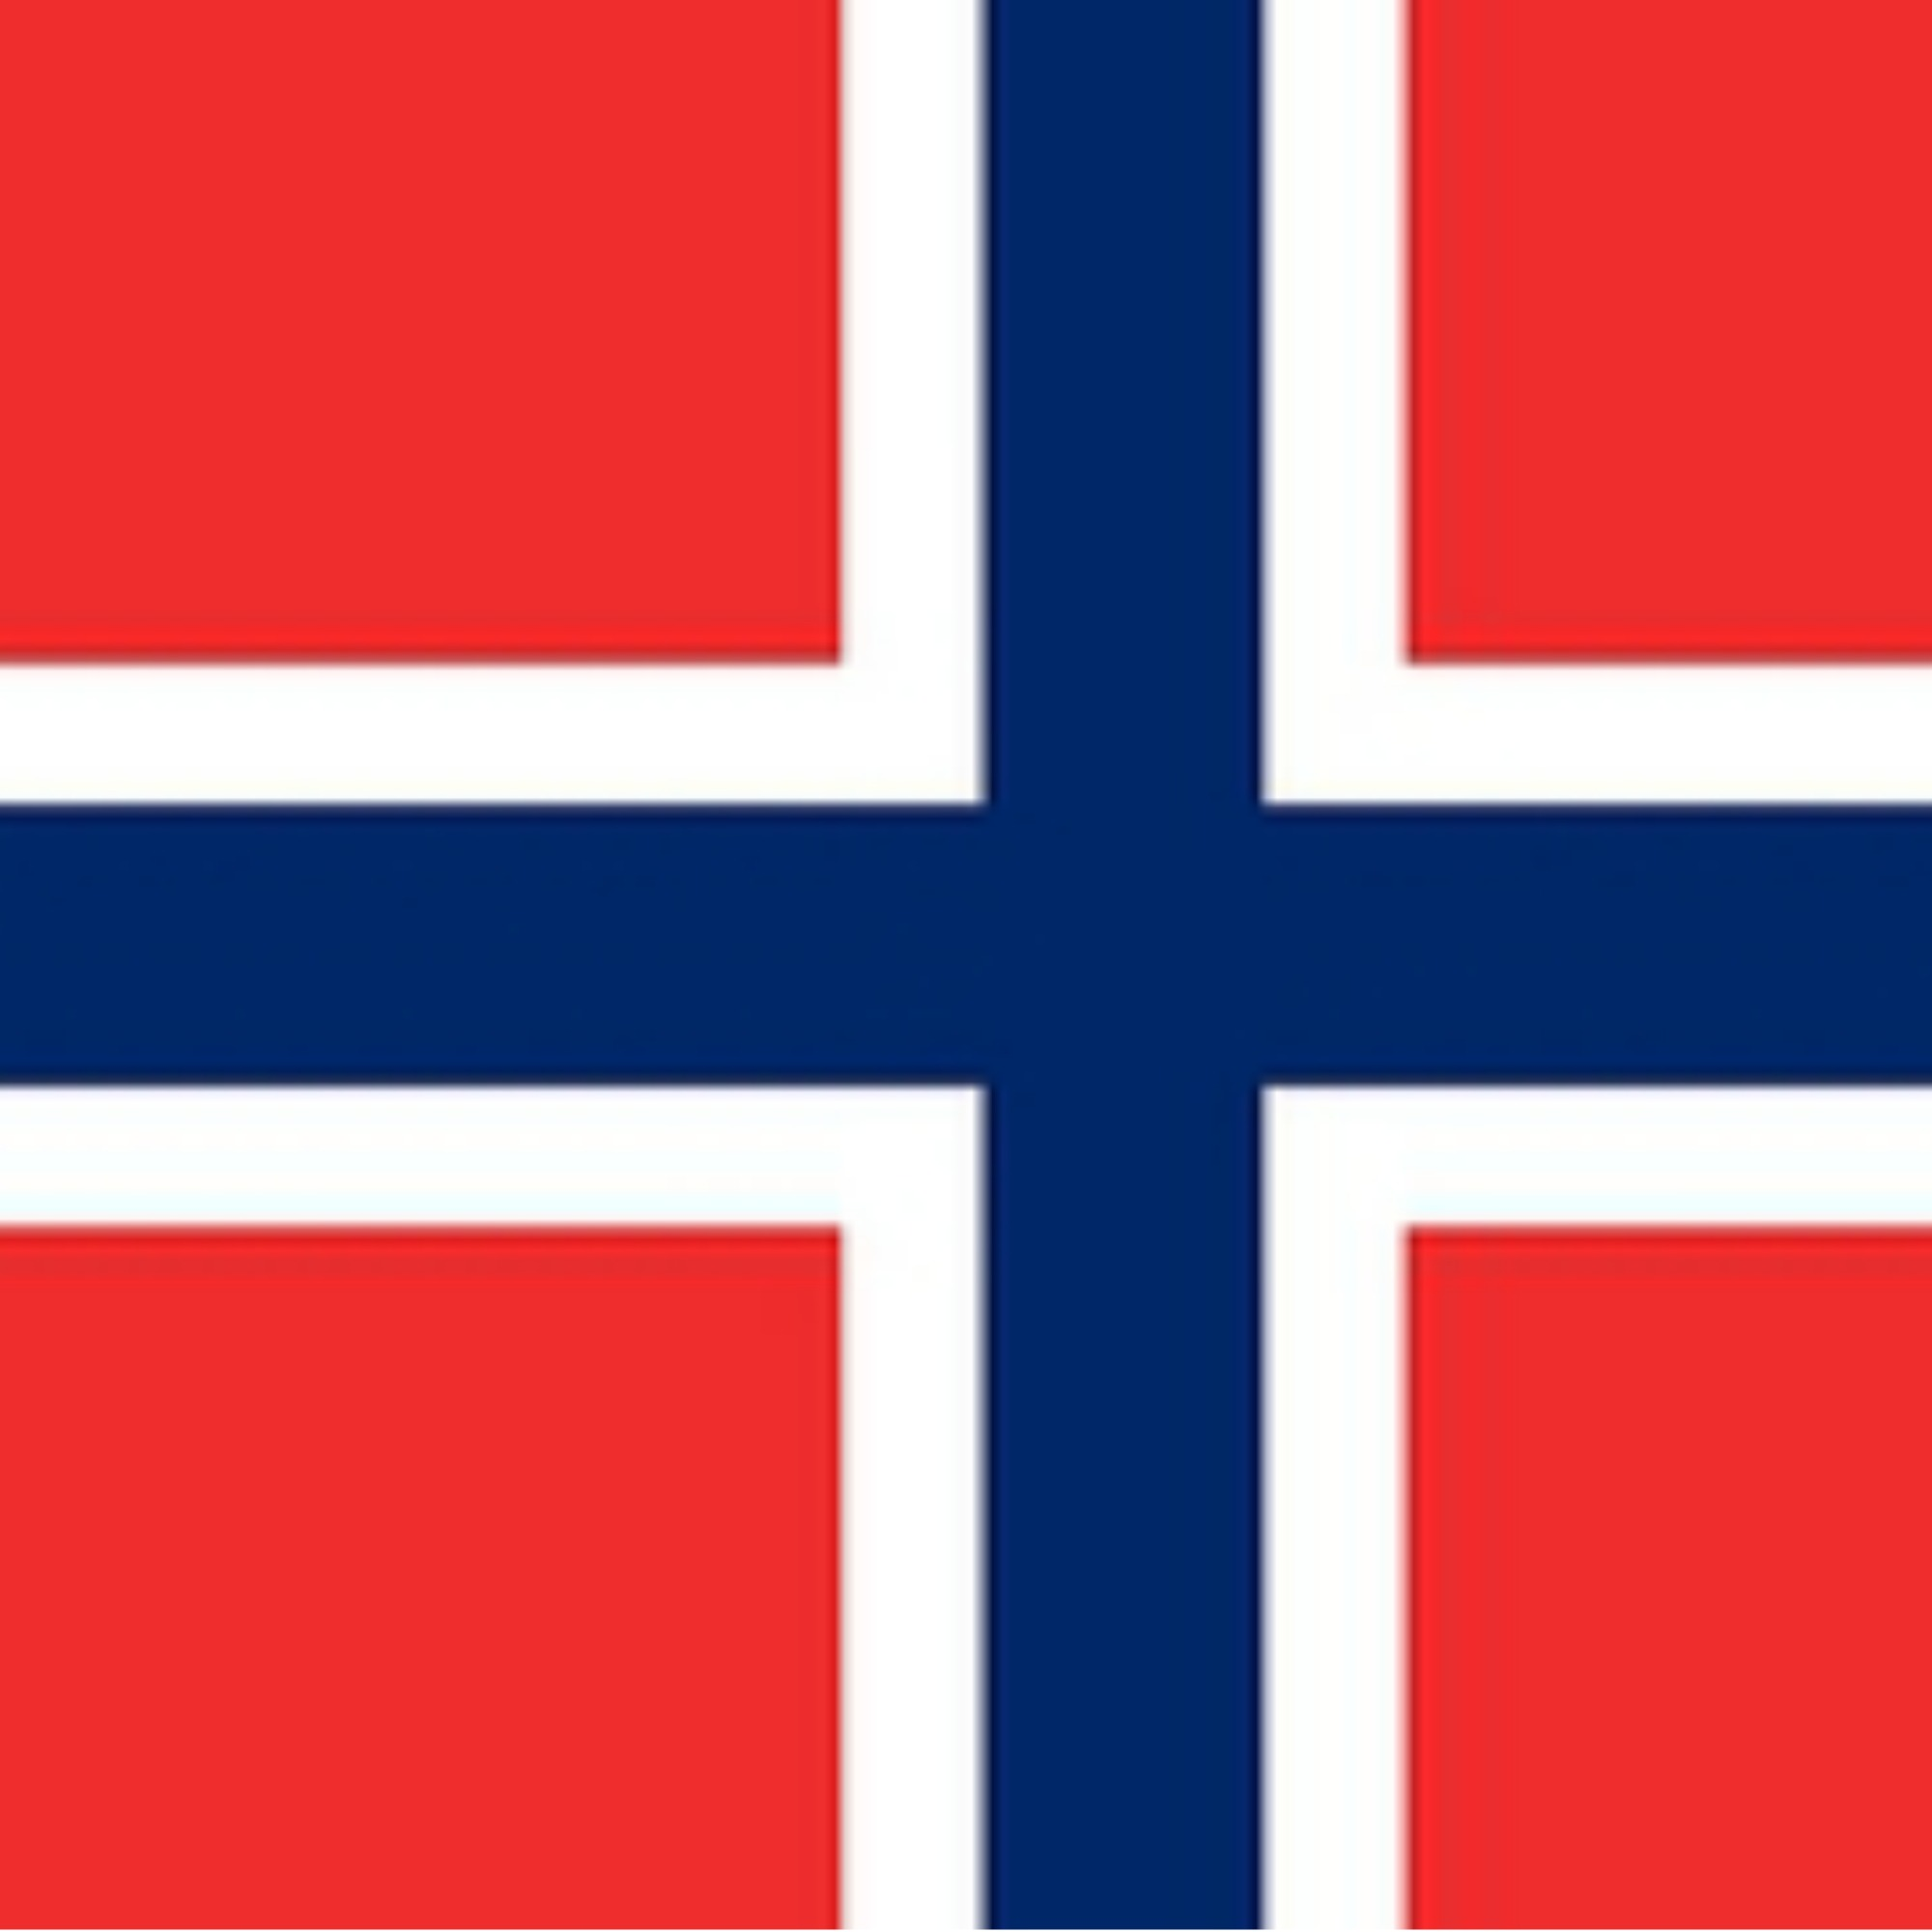 Honorary Consulate of Norway (Torrevieja)